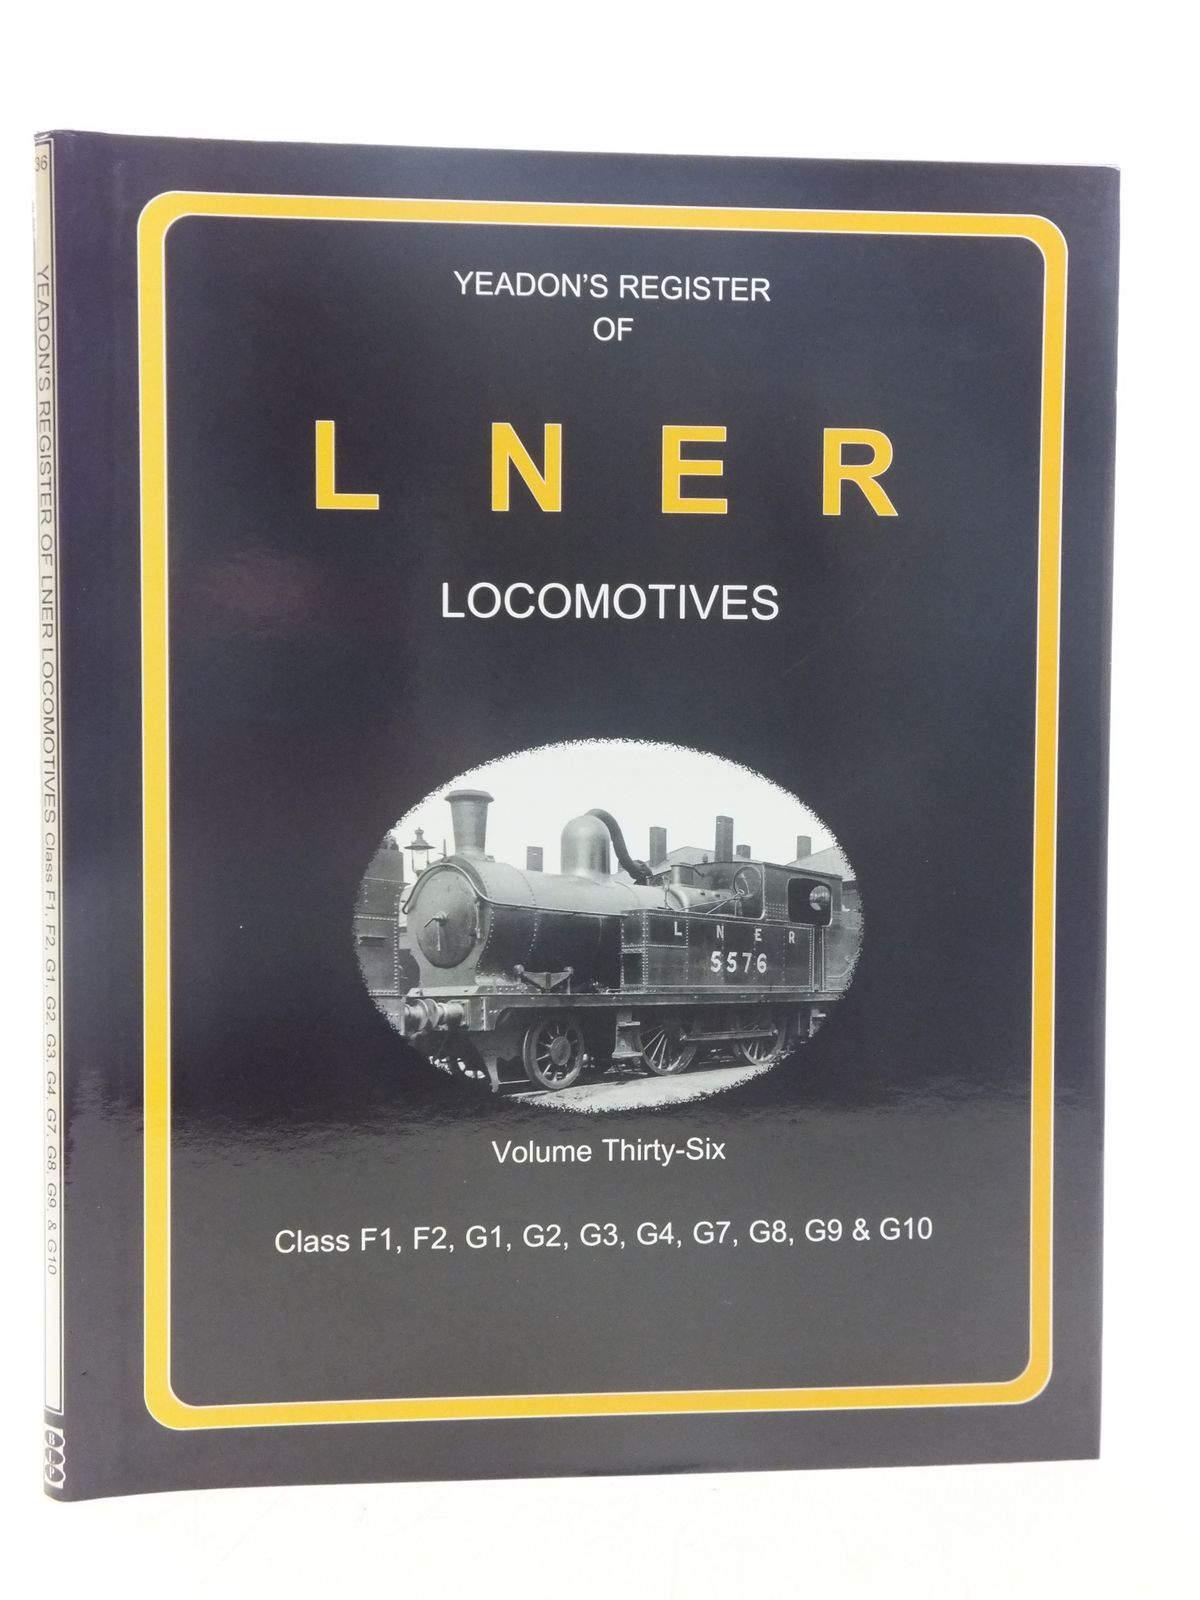 Photo of YEADON'S REGISTER OF LNER LOCOMOTIVES VOLUME THIRTY-SIX published by Challenger Publications, Book Law Publications (STOCK CODE: 1606910)  for sale by Stella & Rose's Books